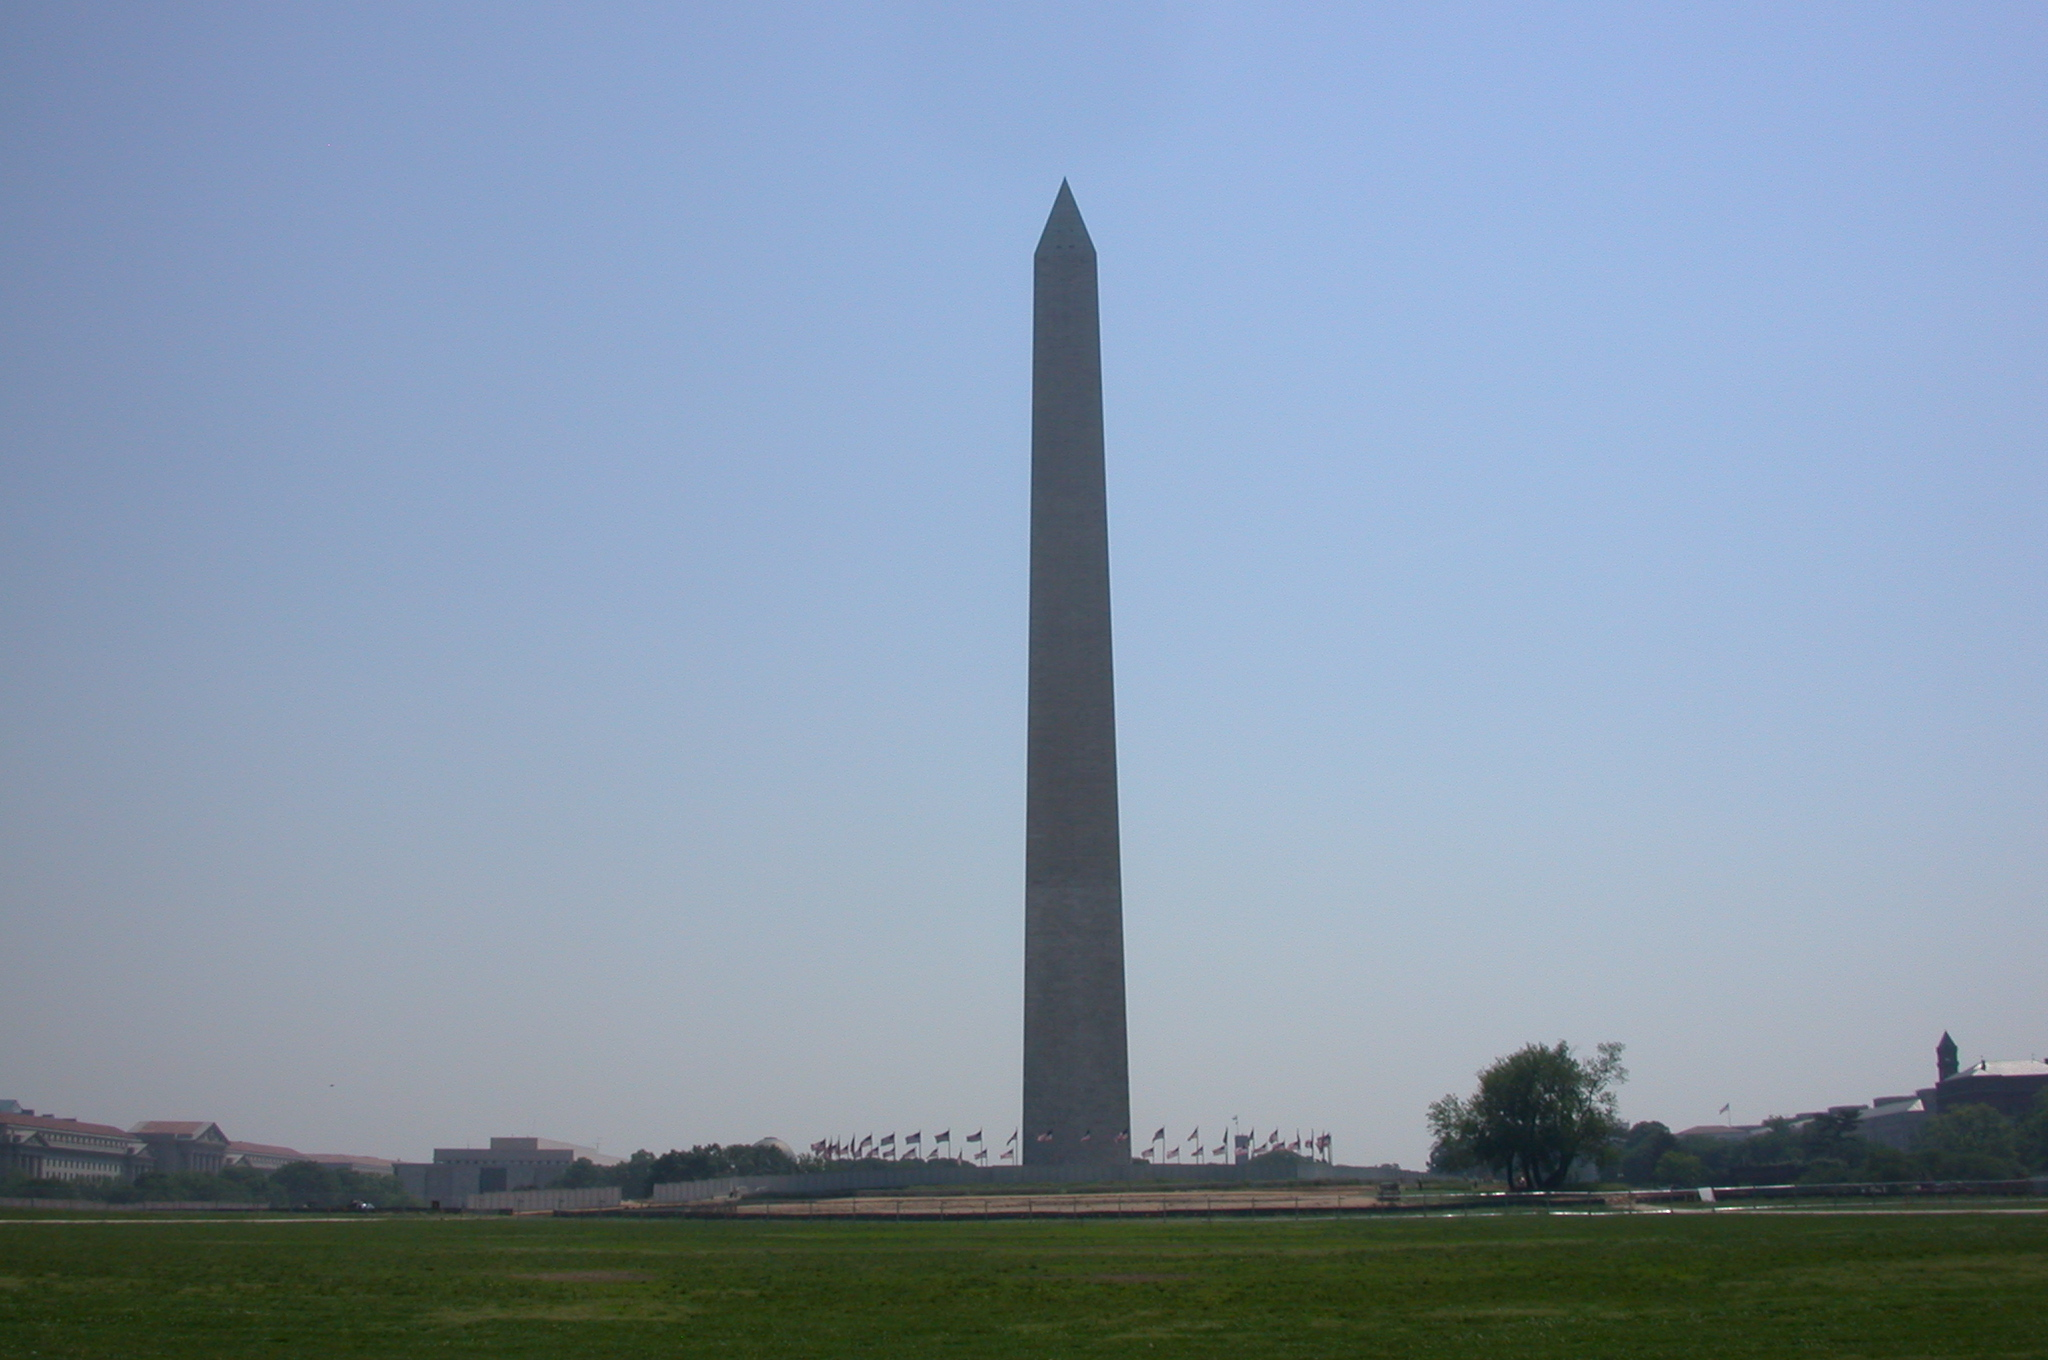 DSCN0050.jpg - Another view of the Washington Monument.